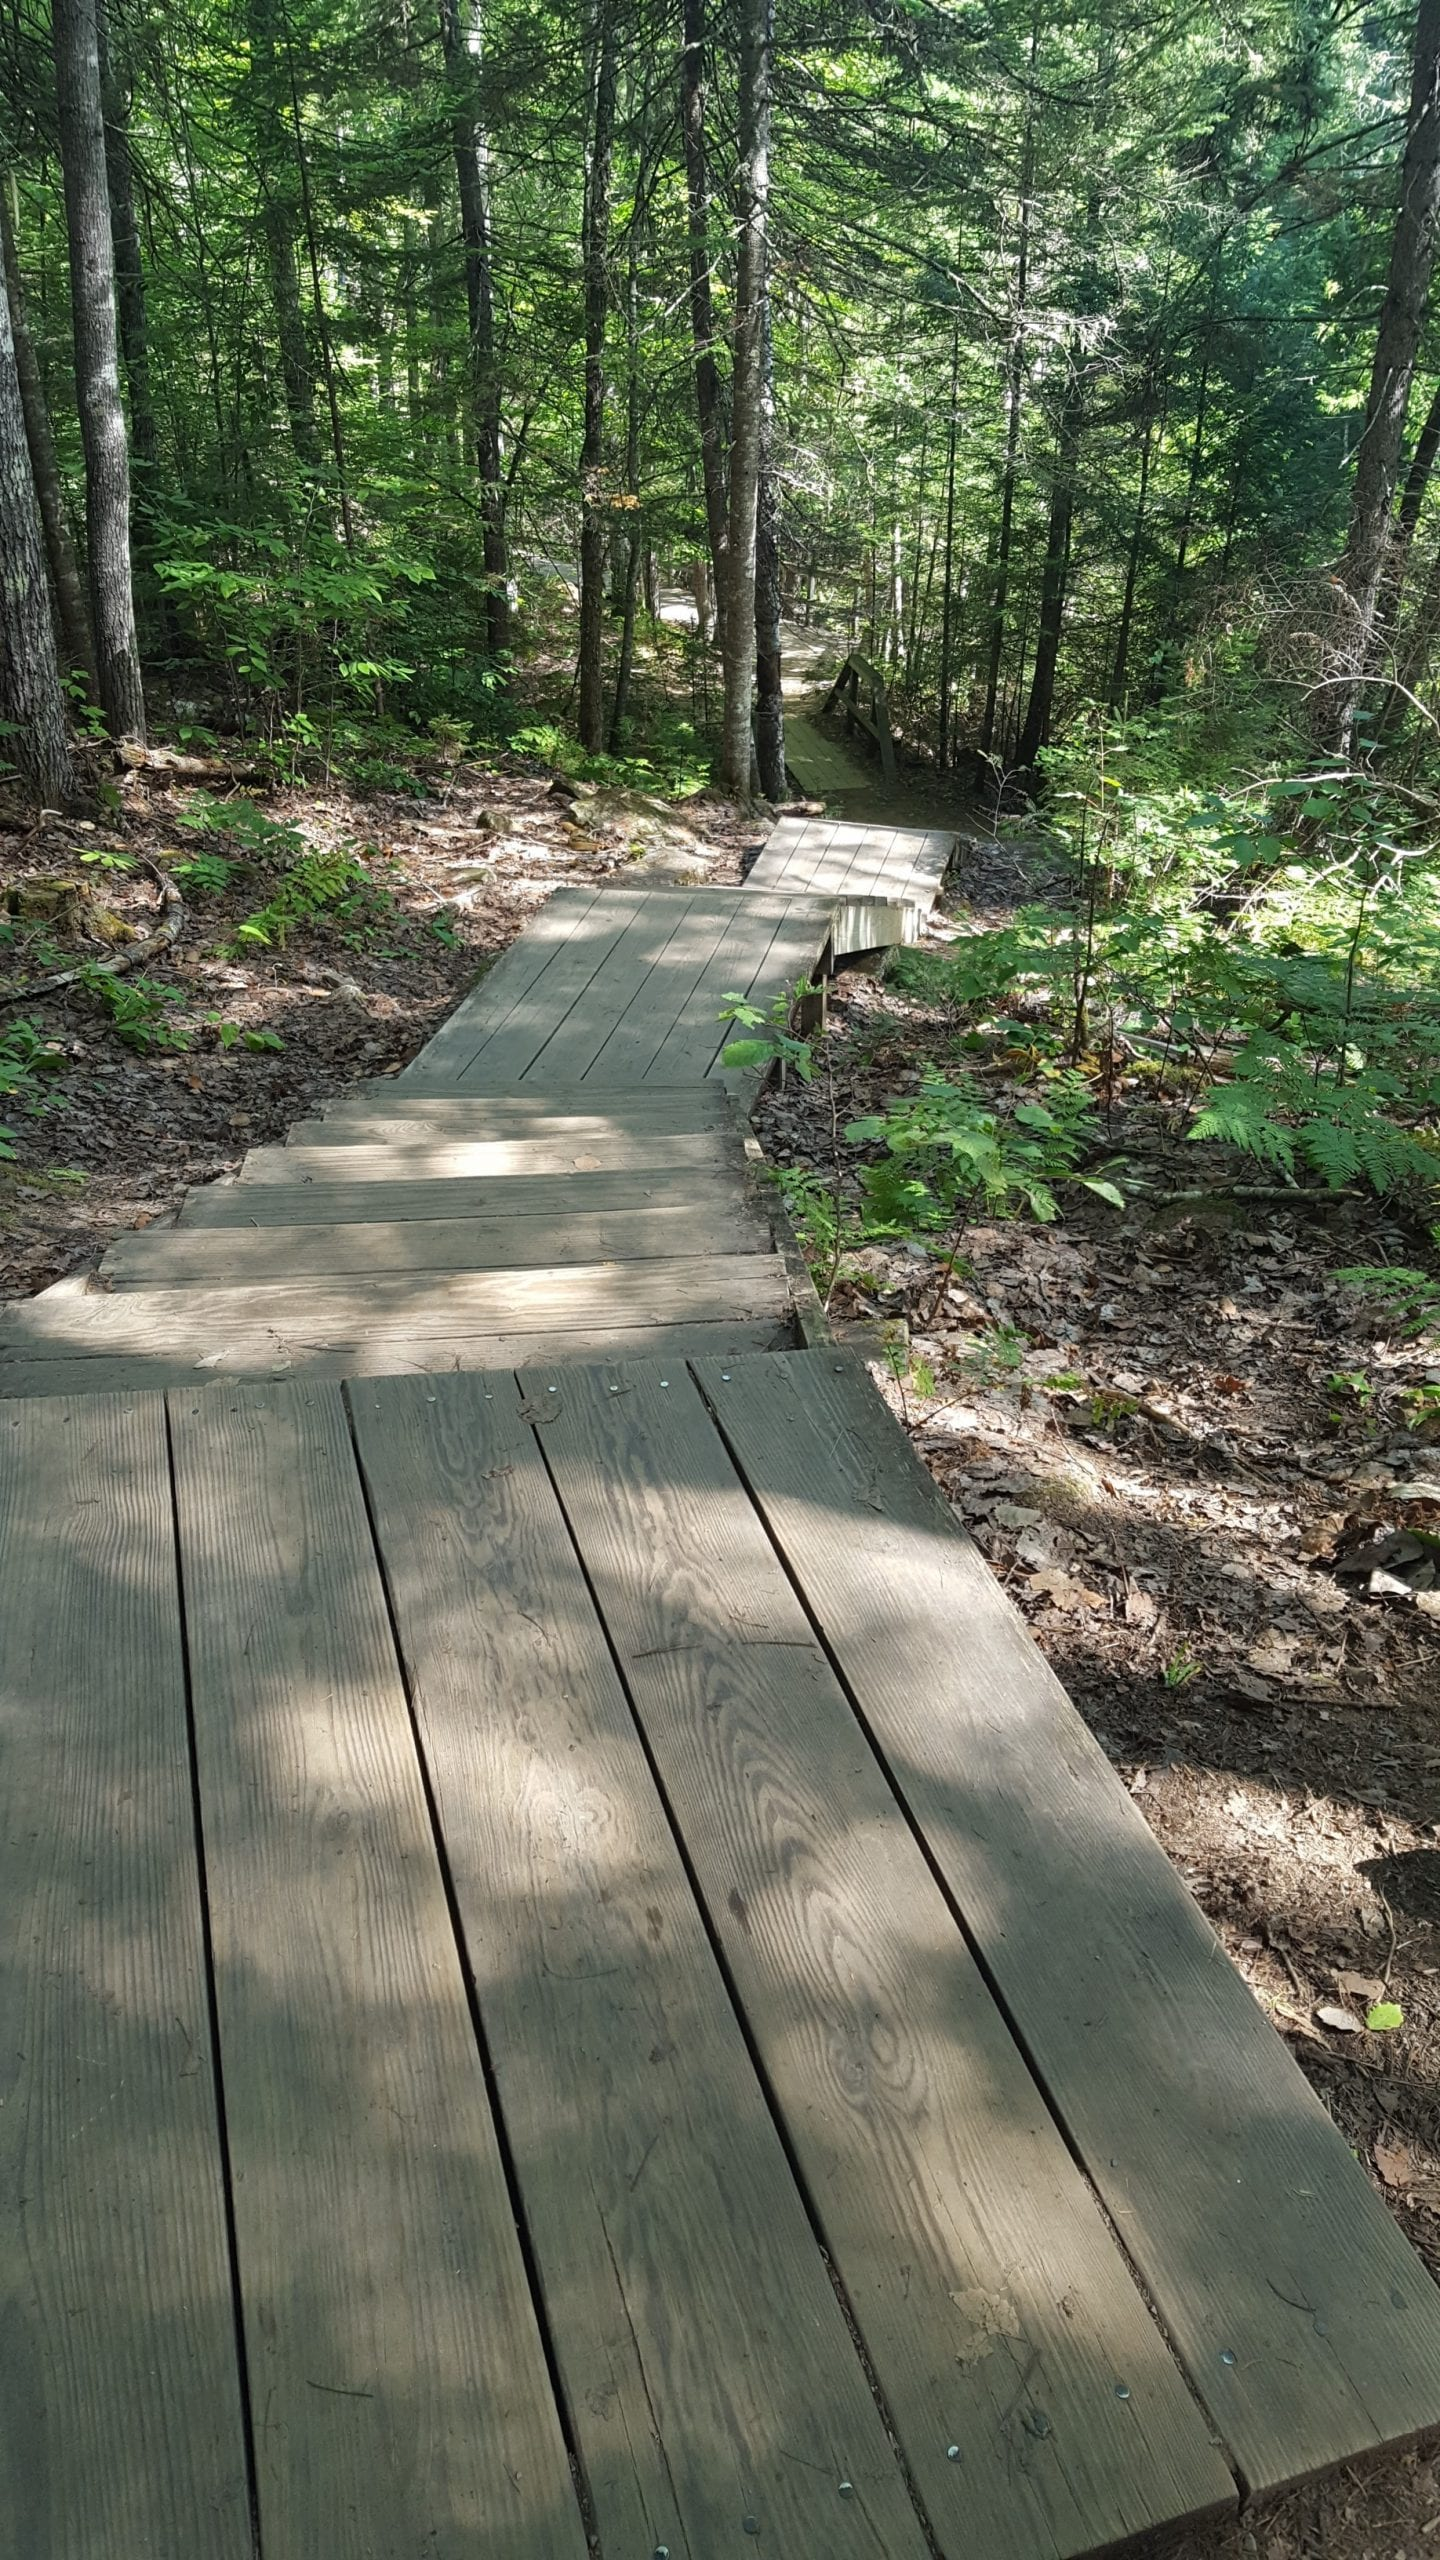 There are several boardwalks and sets of wooden stairs on the way to Moxie Falls.